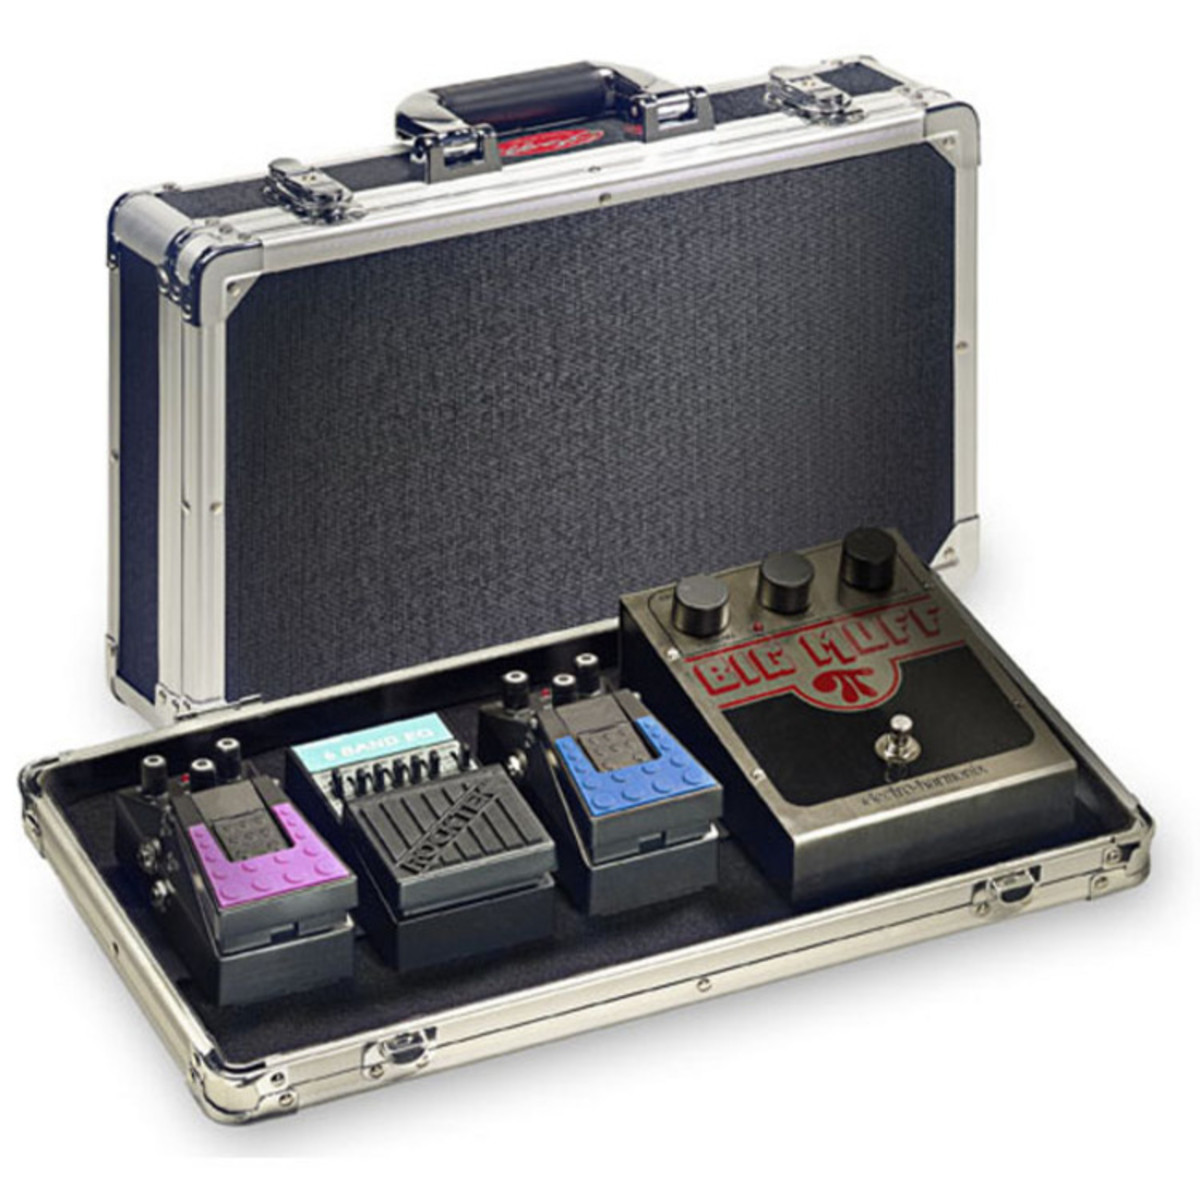 stagg upc 424 guitar pedal board at gear4music. Black Bedroom Furniture Sets. Home Design Ideas